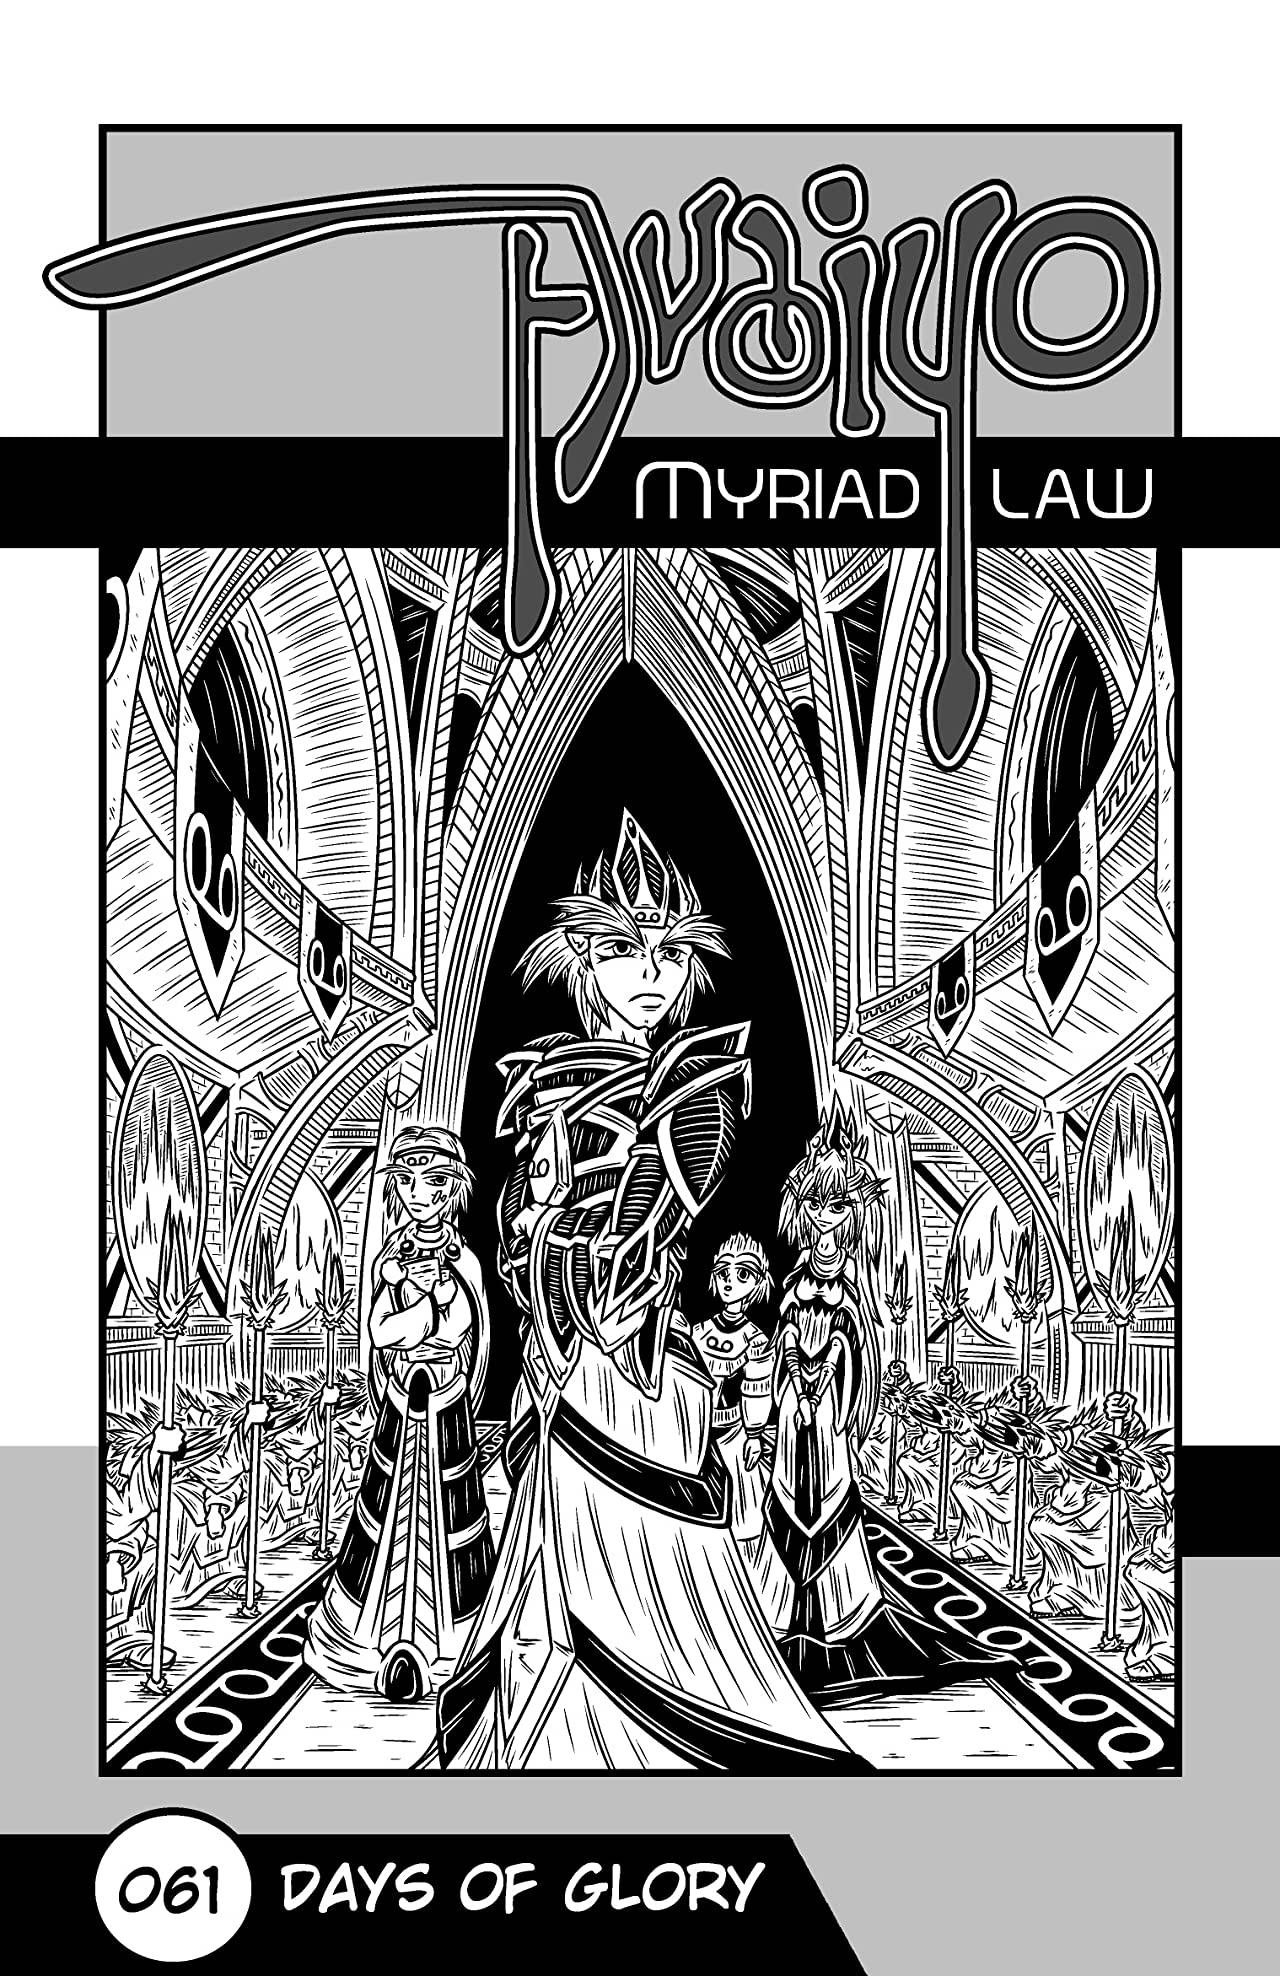 Avaiyo: Myriad Law #061